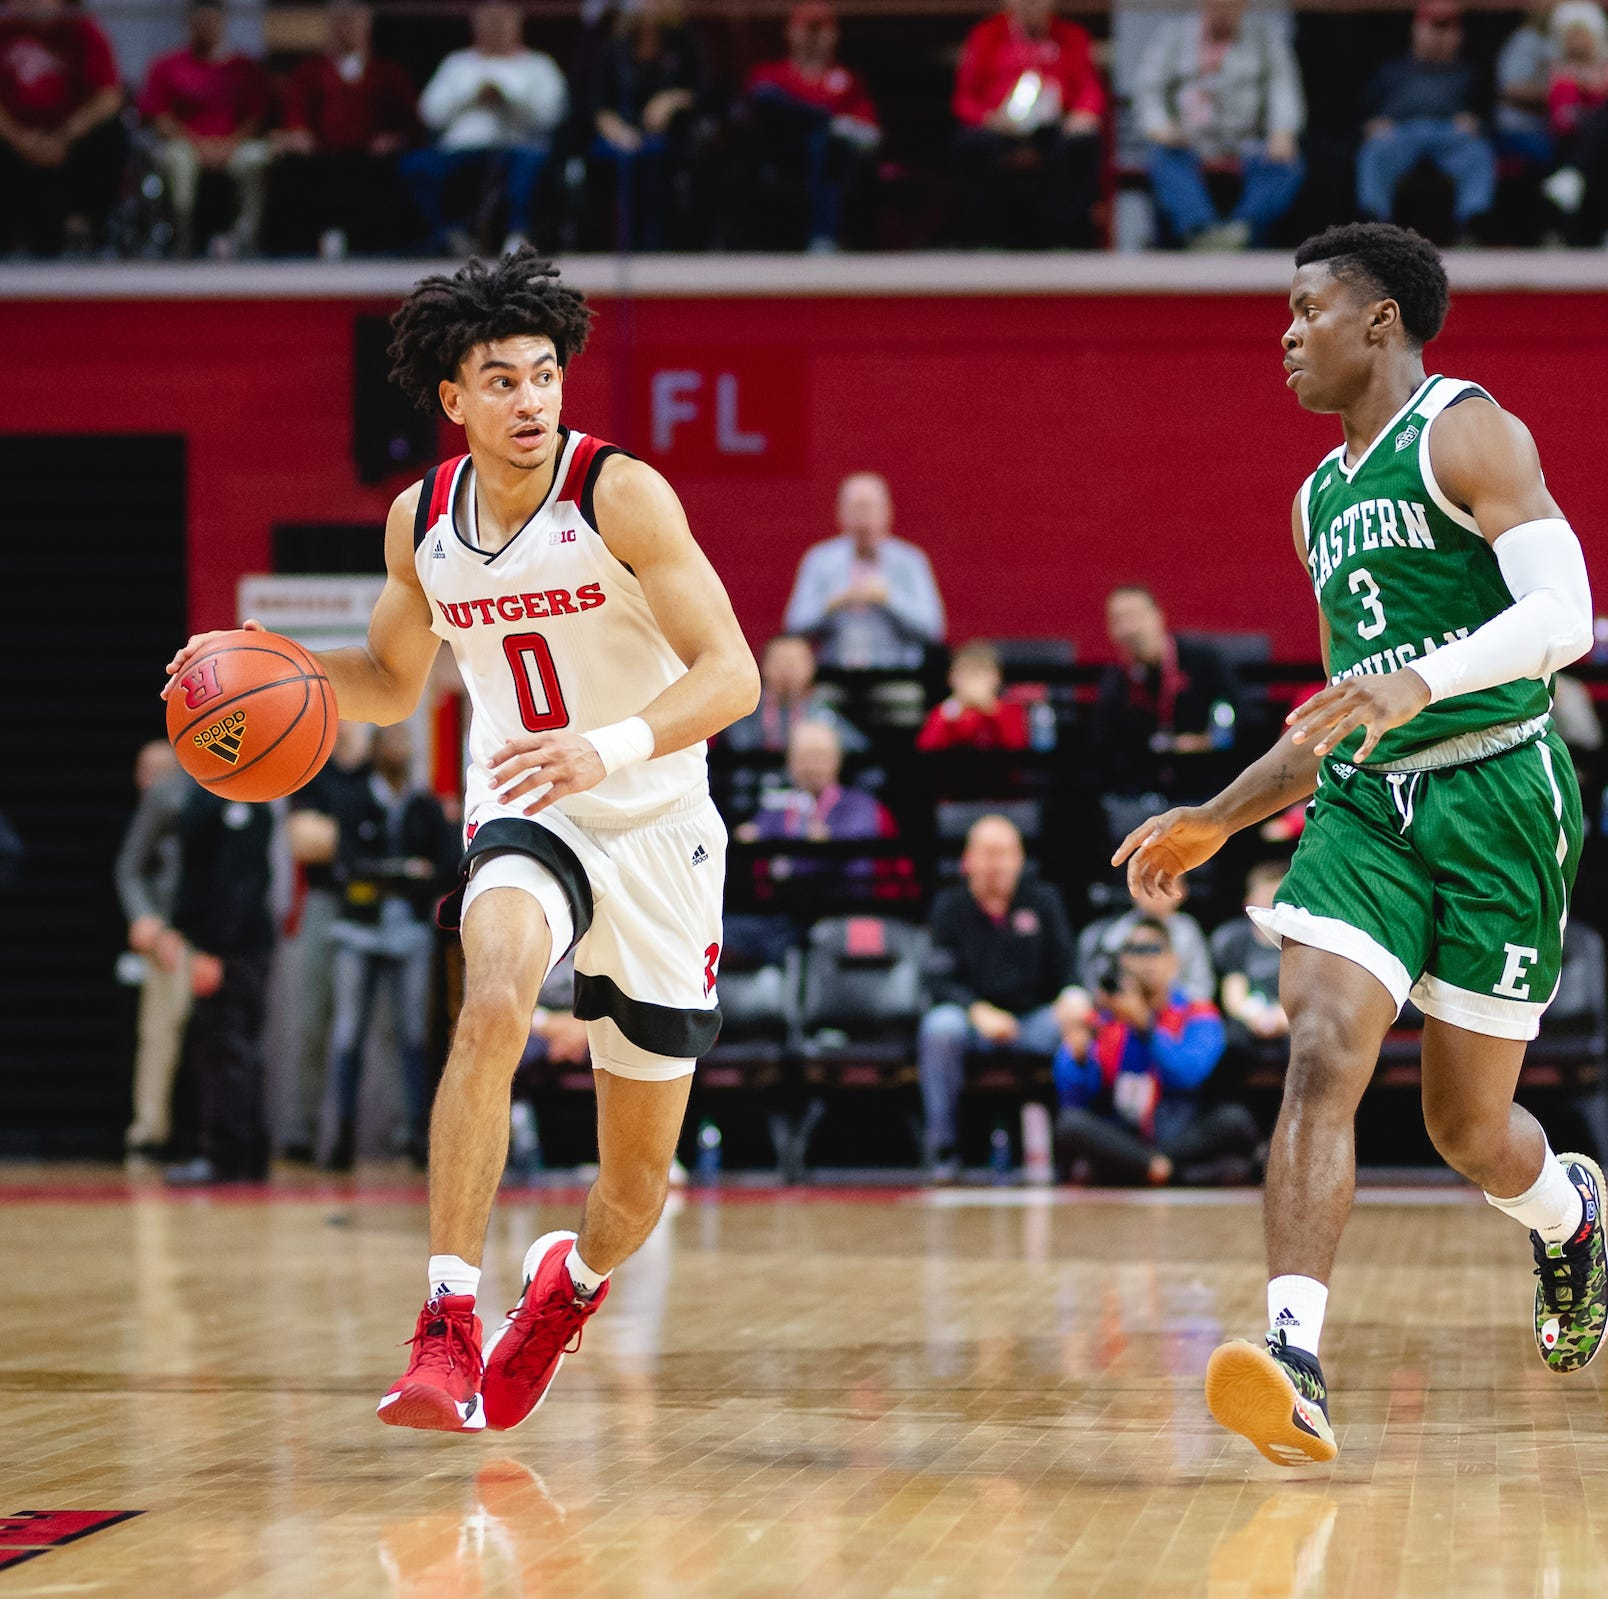 Rutgers basketball ties modern NCAA defensive record in beatdown of Eastern Michigan